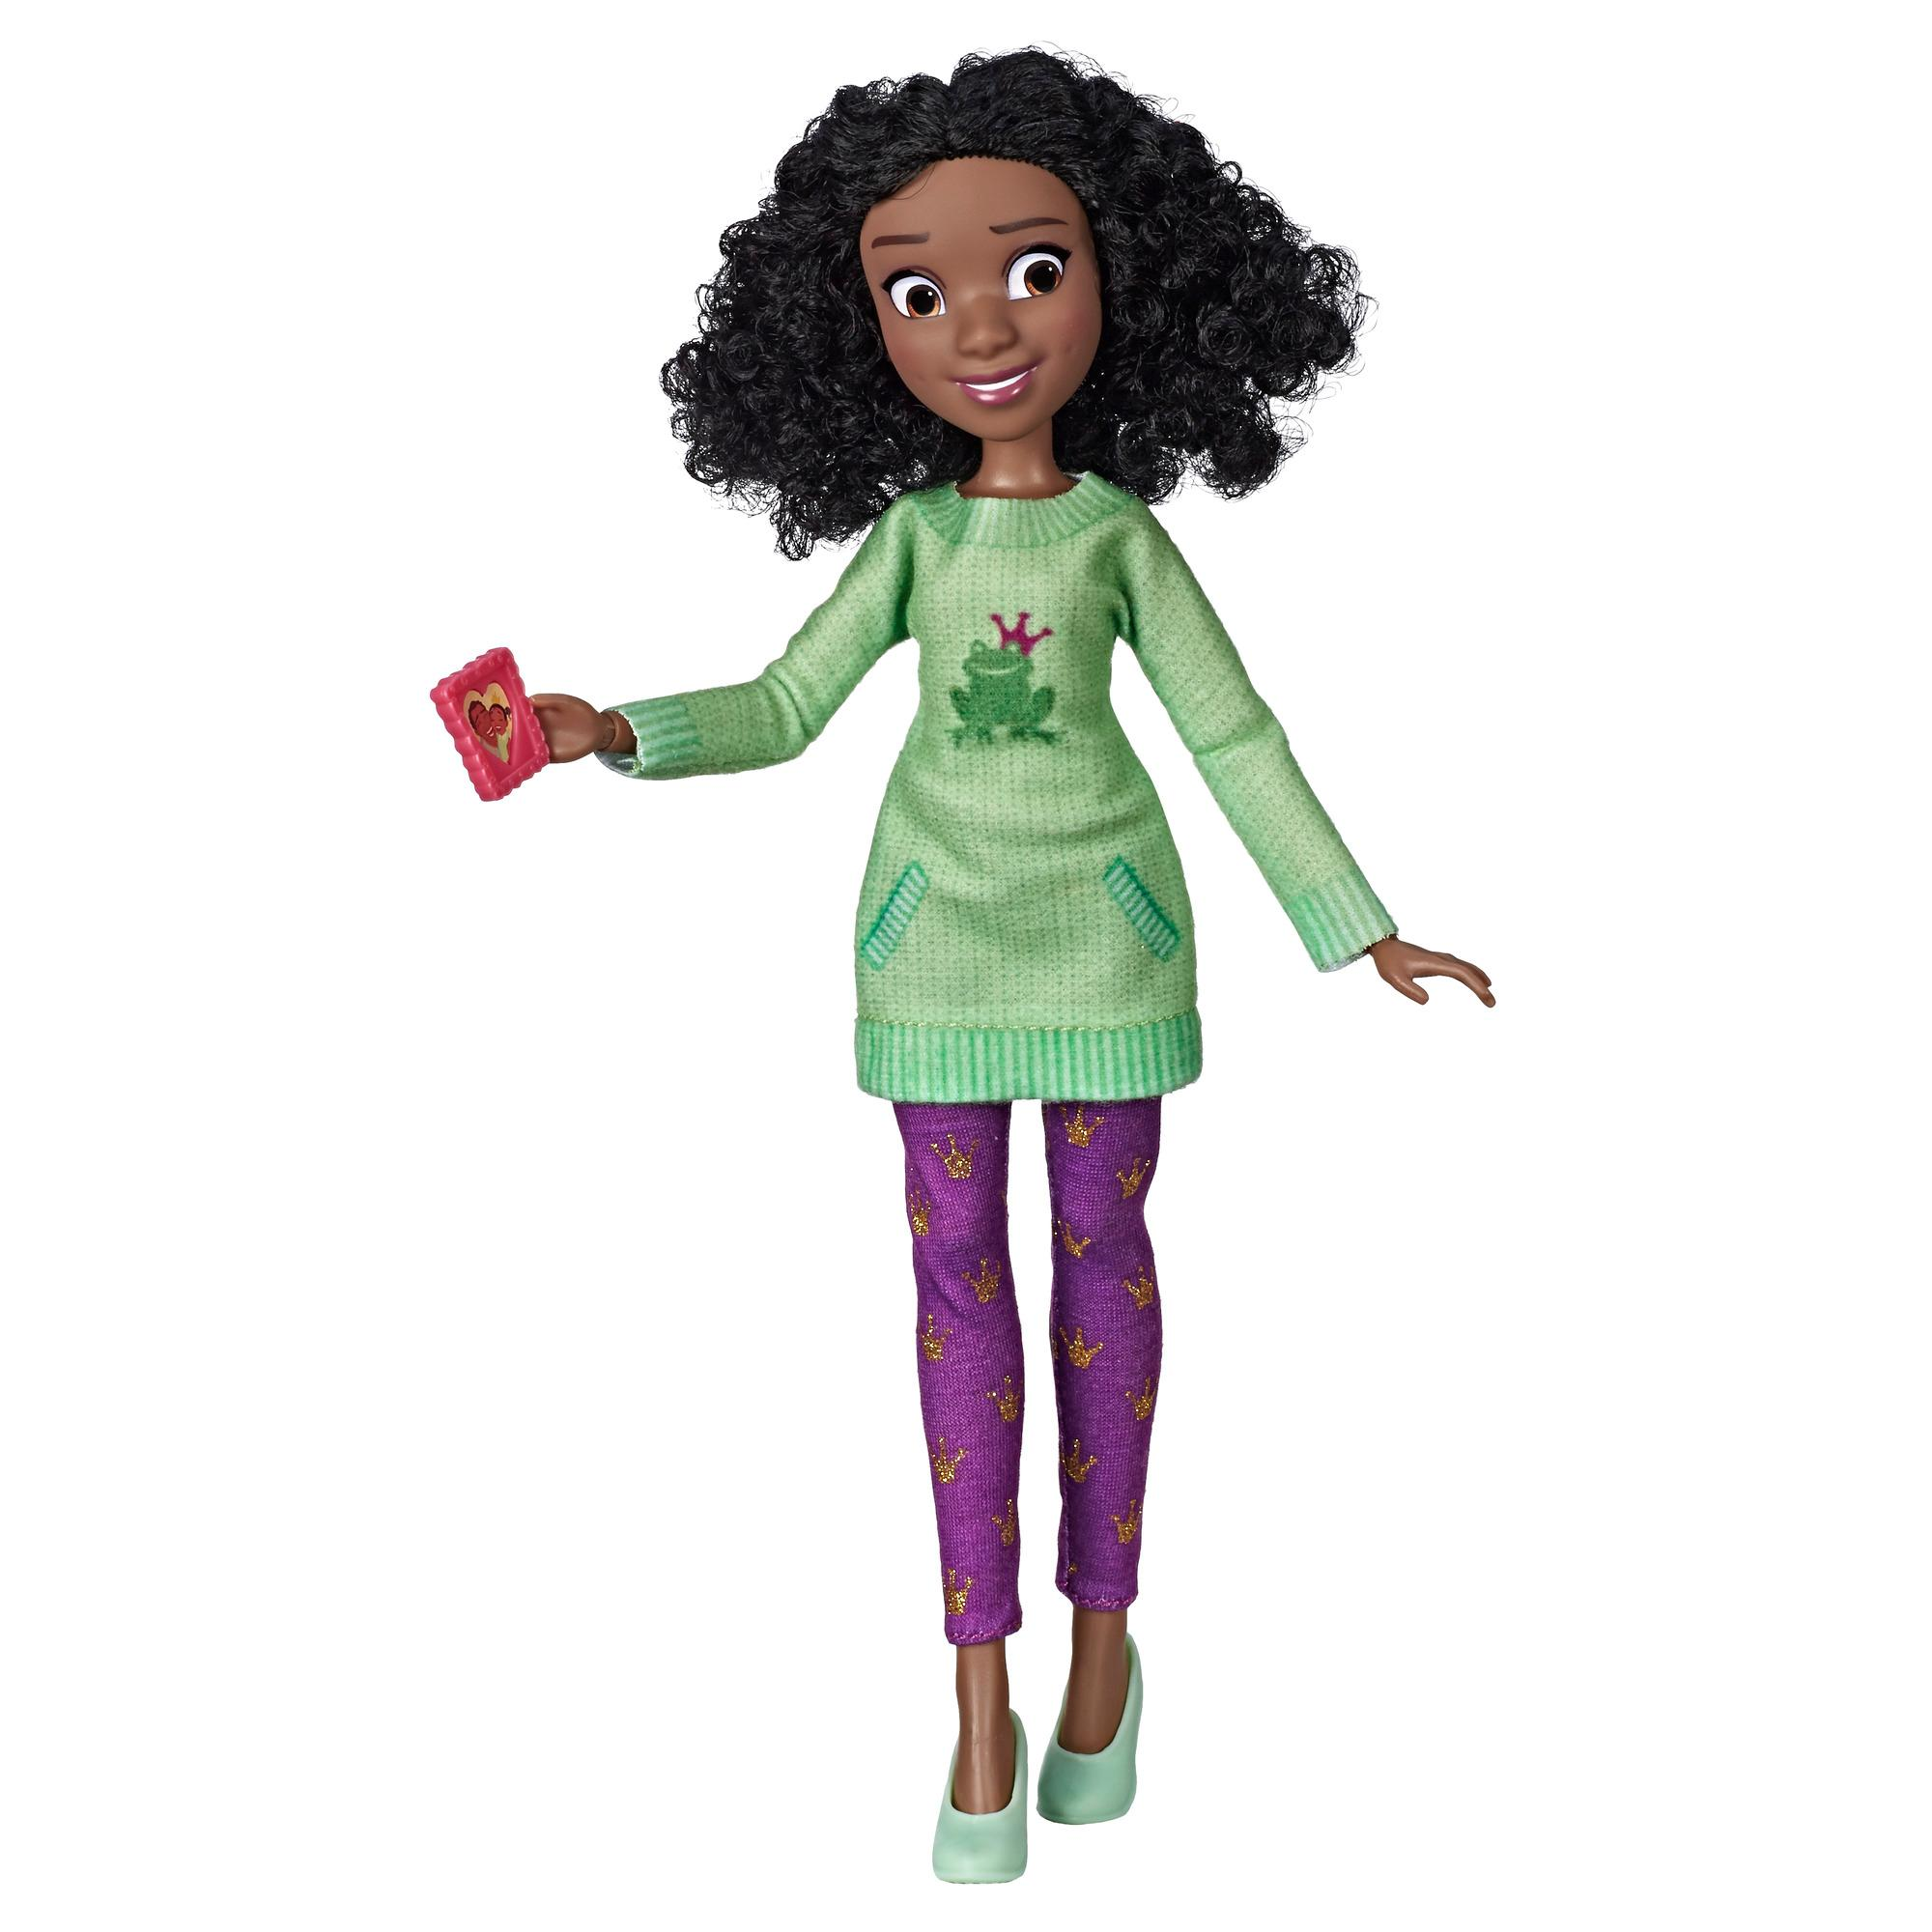 Disney Princess Comfy Squad Tiana, Ralph Breaks the Internet Movie Doll